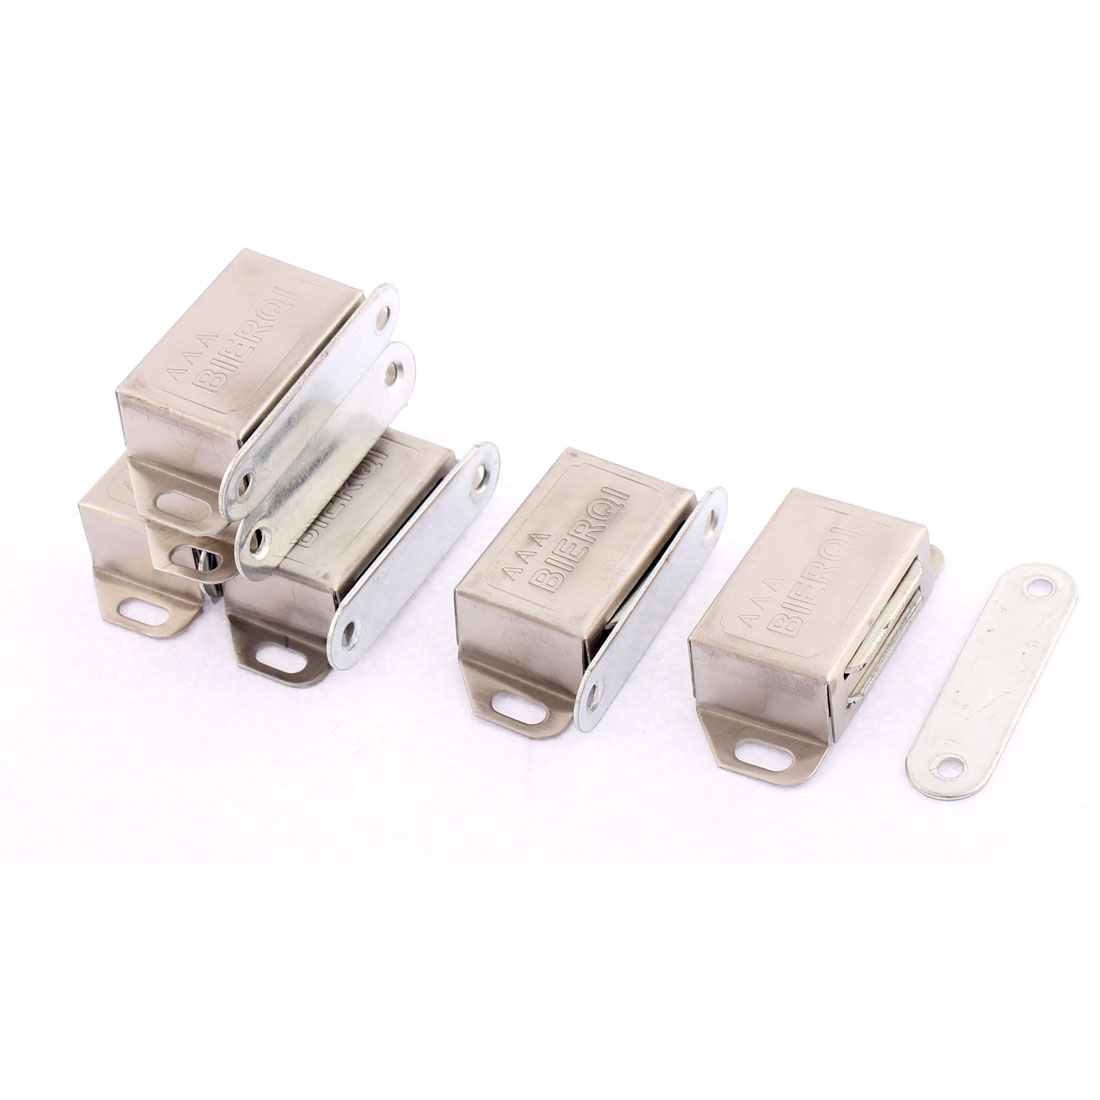 Furniture Cupboard Stainless Steel Magnetic Catch Stopper Latch 54mm Length 6pcs